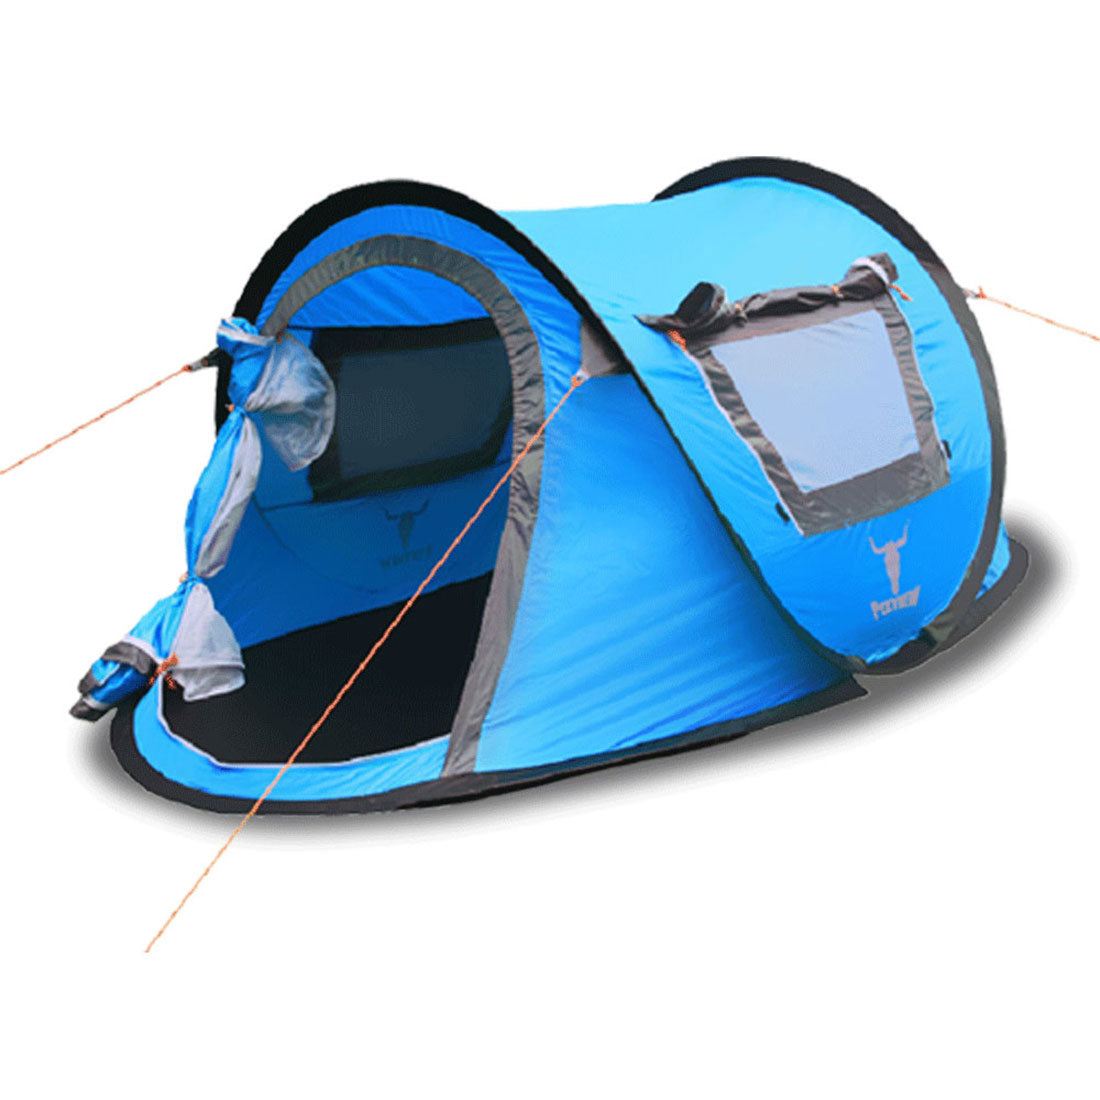 ... Pop Up Tents. h m s Remaining  sc 1 st  MyDeal & ONE TOUCH EASY SET UP POPUP POP UP INSTANT 2 PERSON TENT UV PROTECT ...